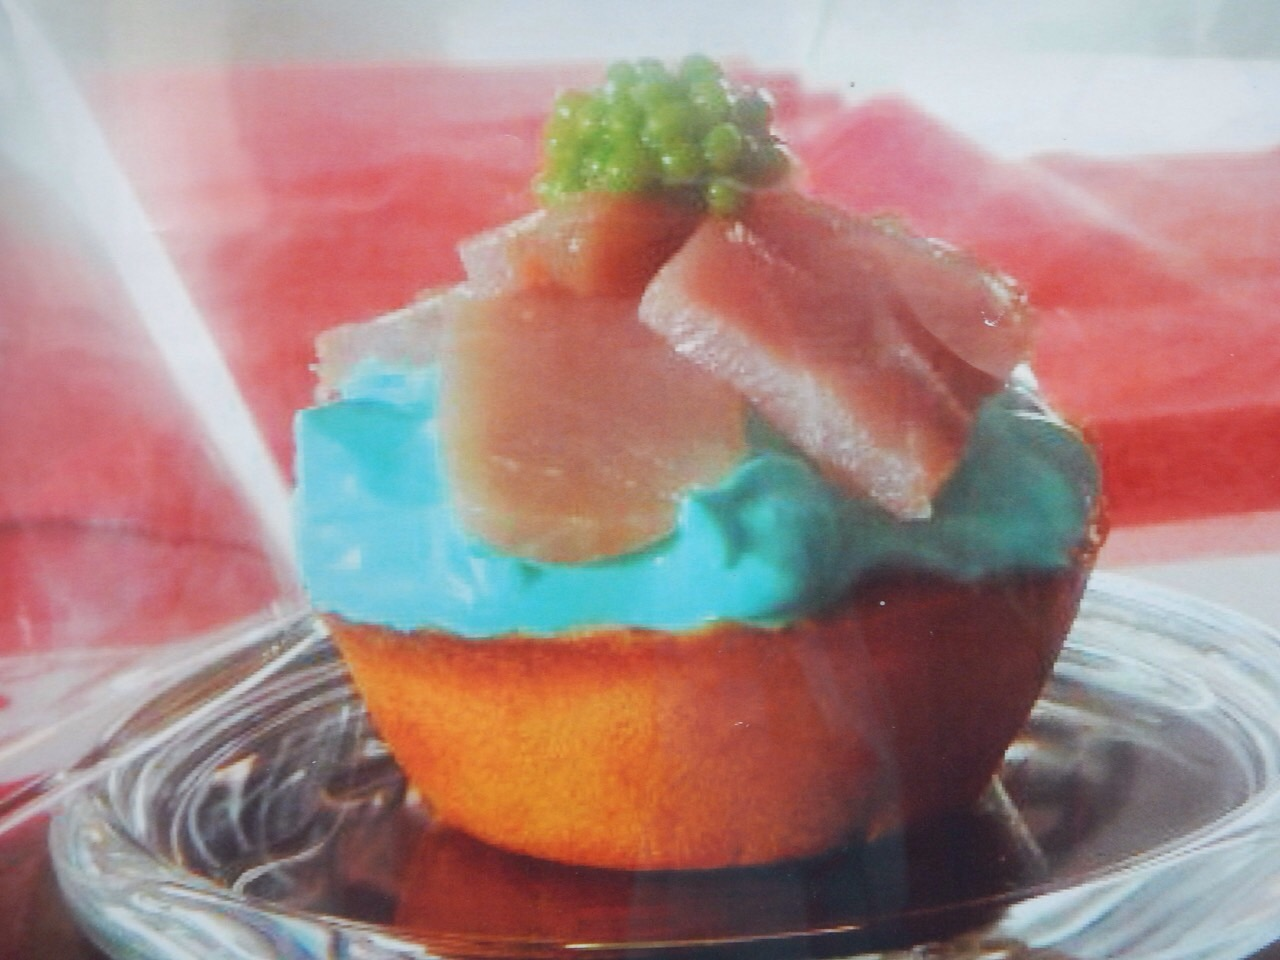 cup cake a la tuna. The base is like a donut bread, then cream cheese, tuna and roe, all served on a little plate under a glass bell jar. This dish deserves an award just for presentation alone.